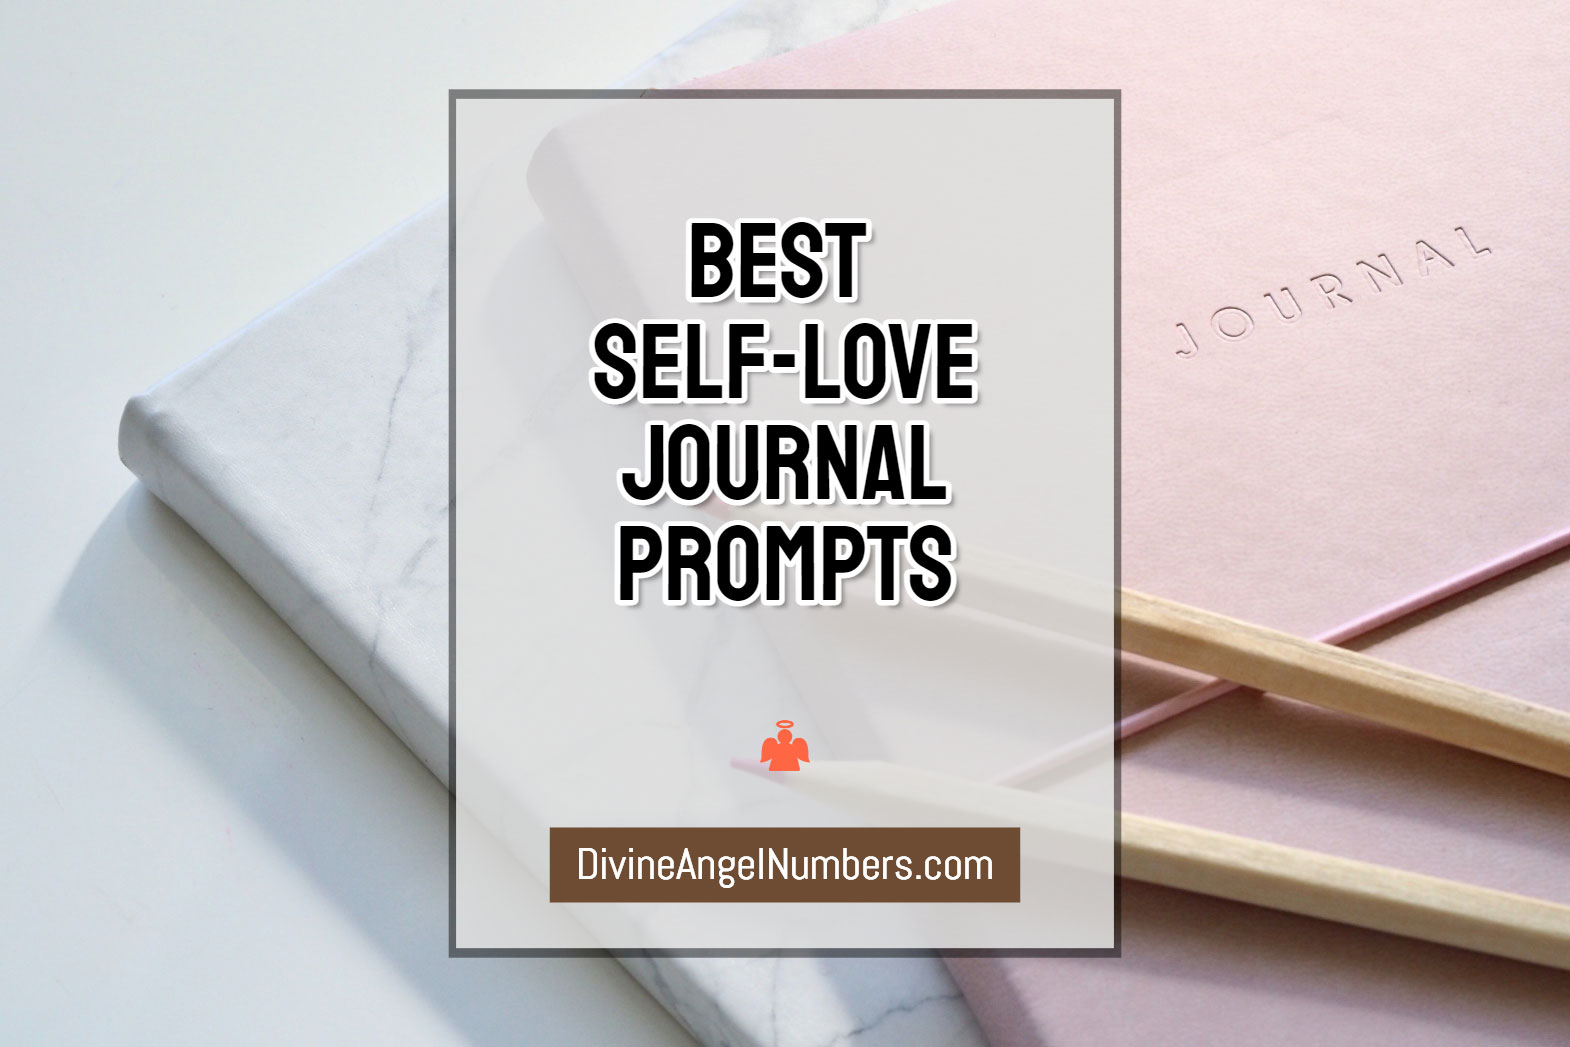 Self-Love Journal Prompts